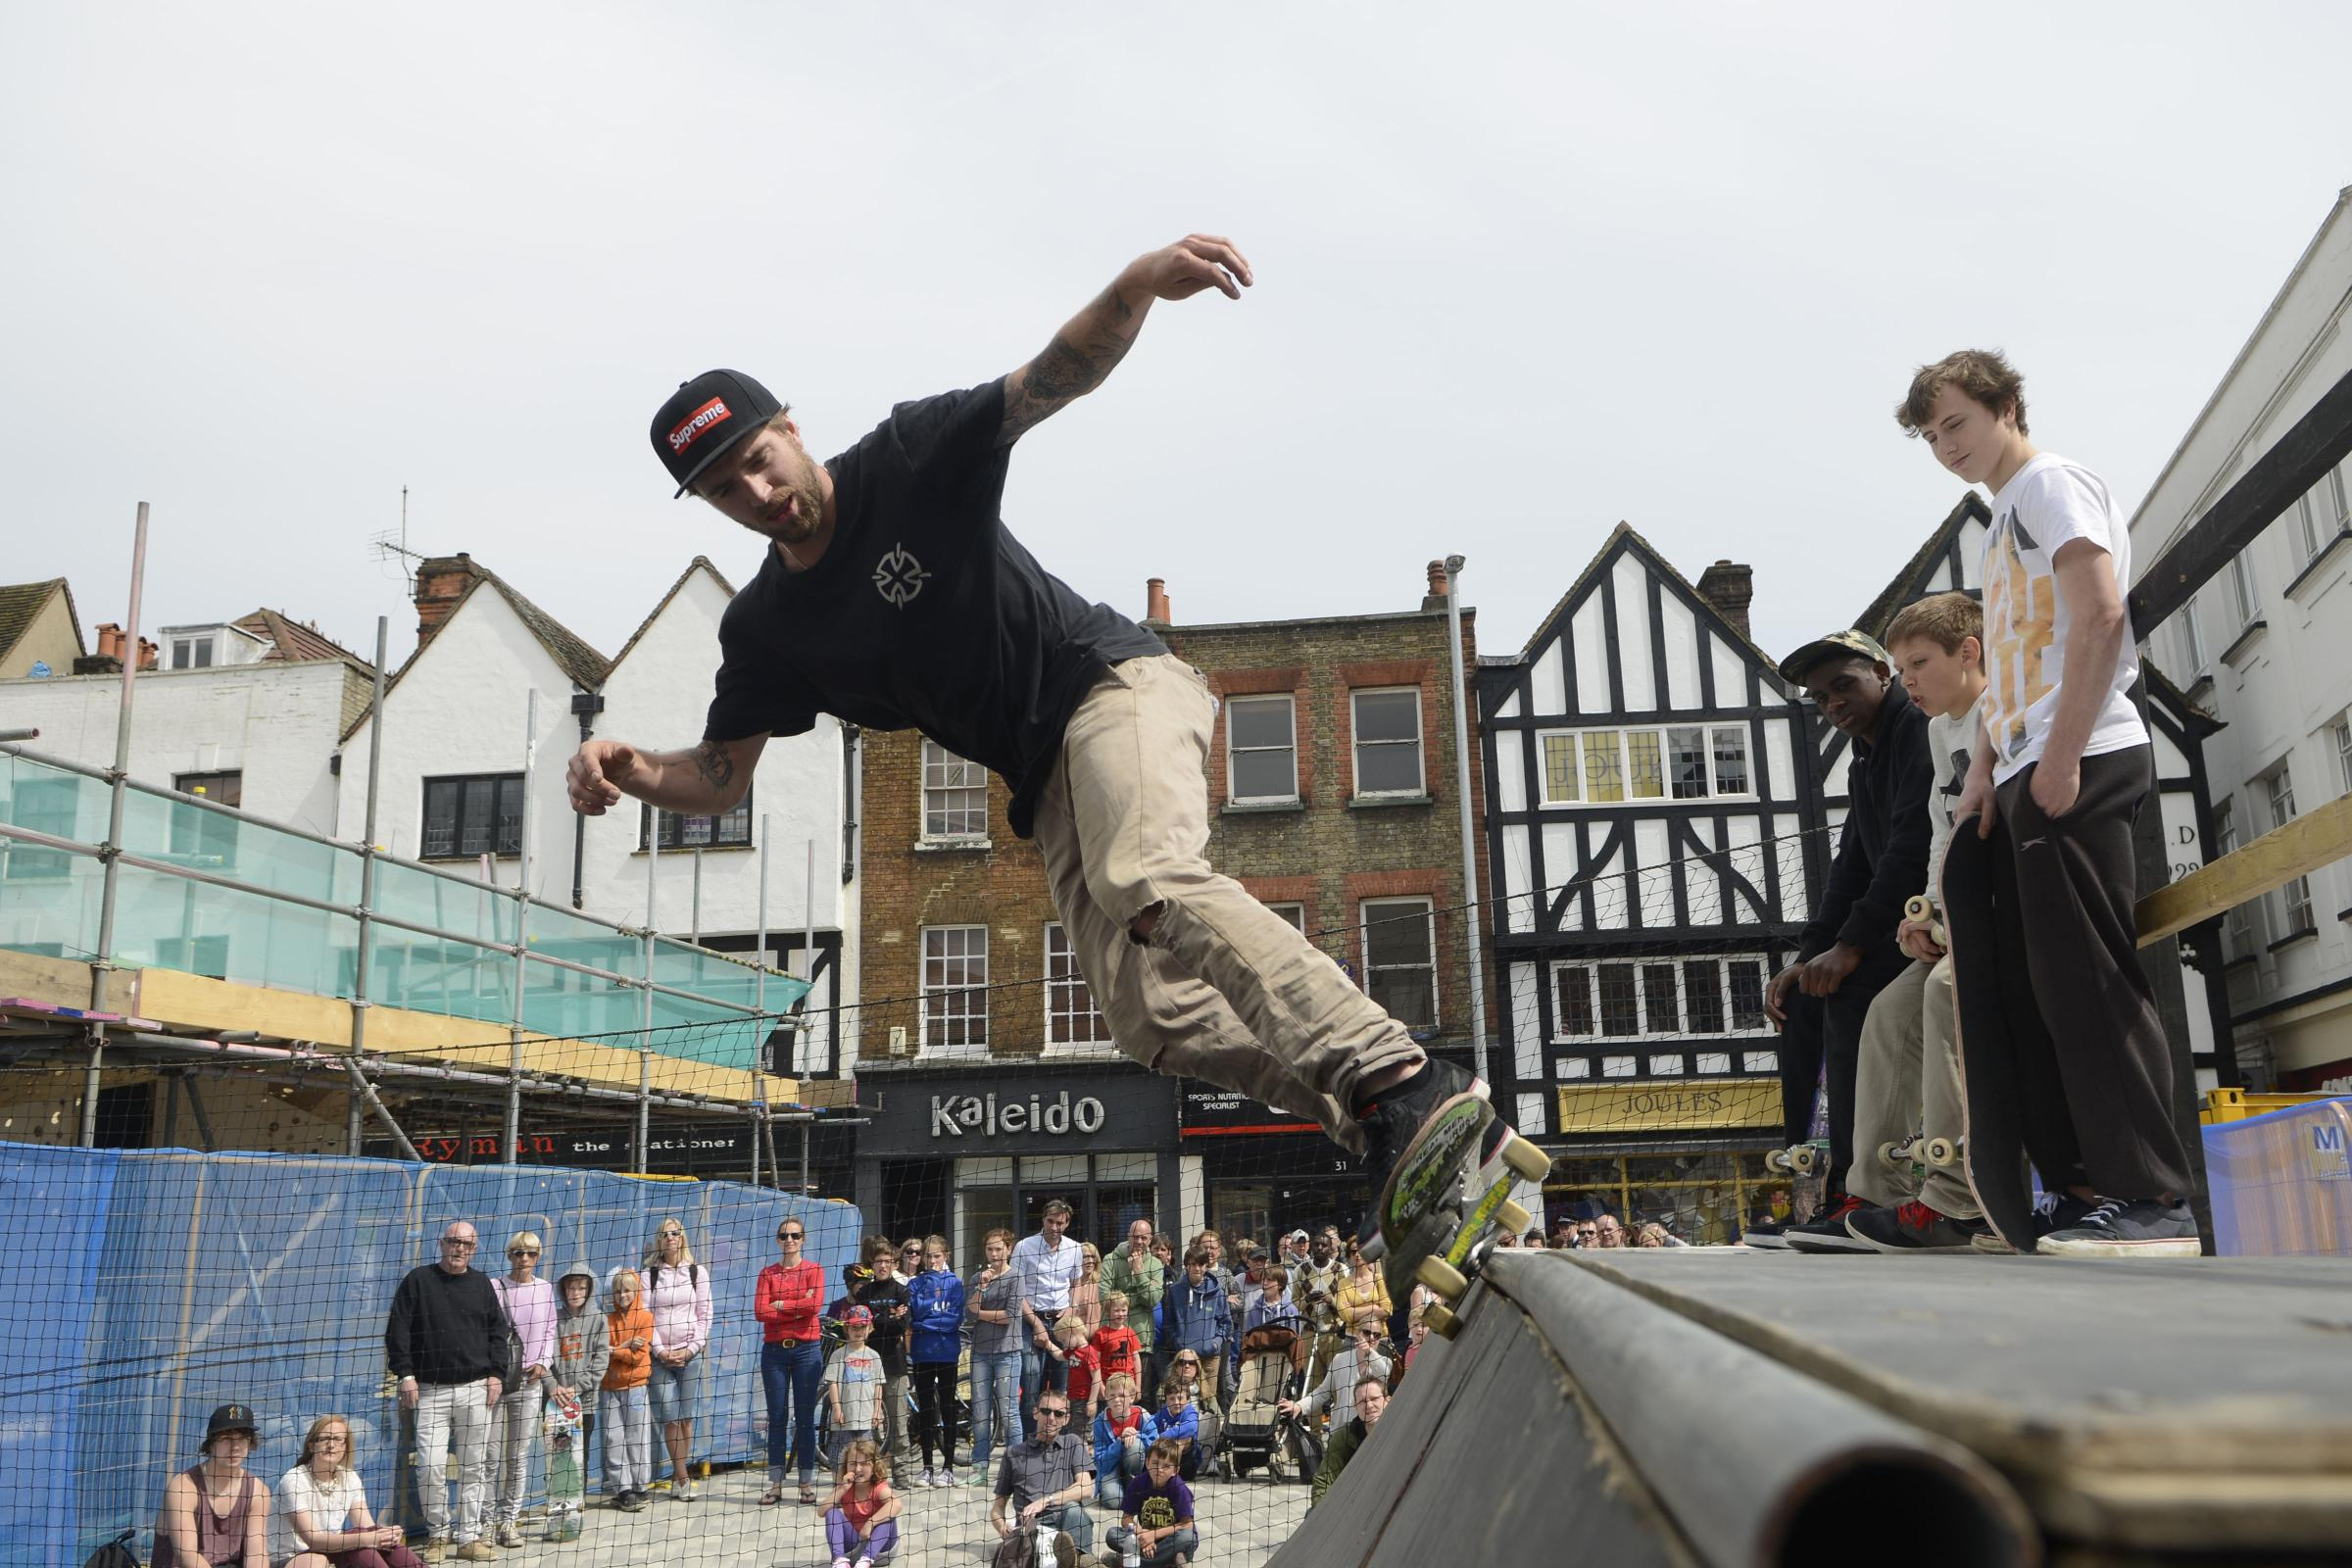 Skater Ewen Bower at the festival